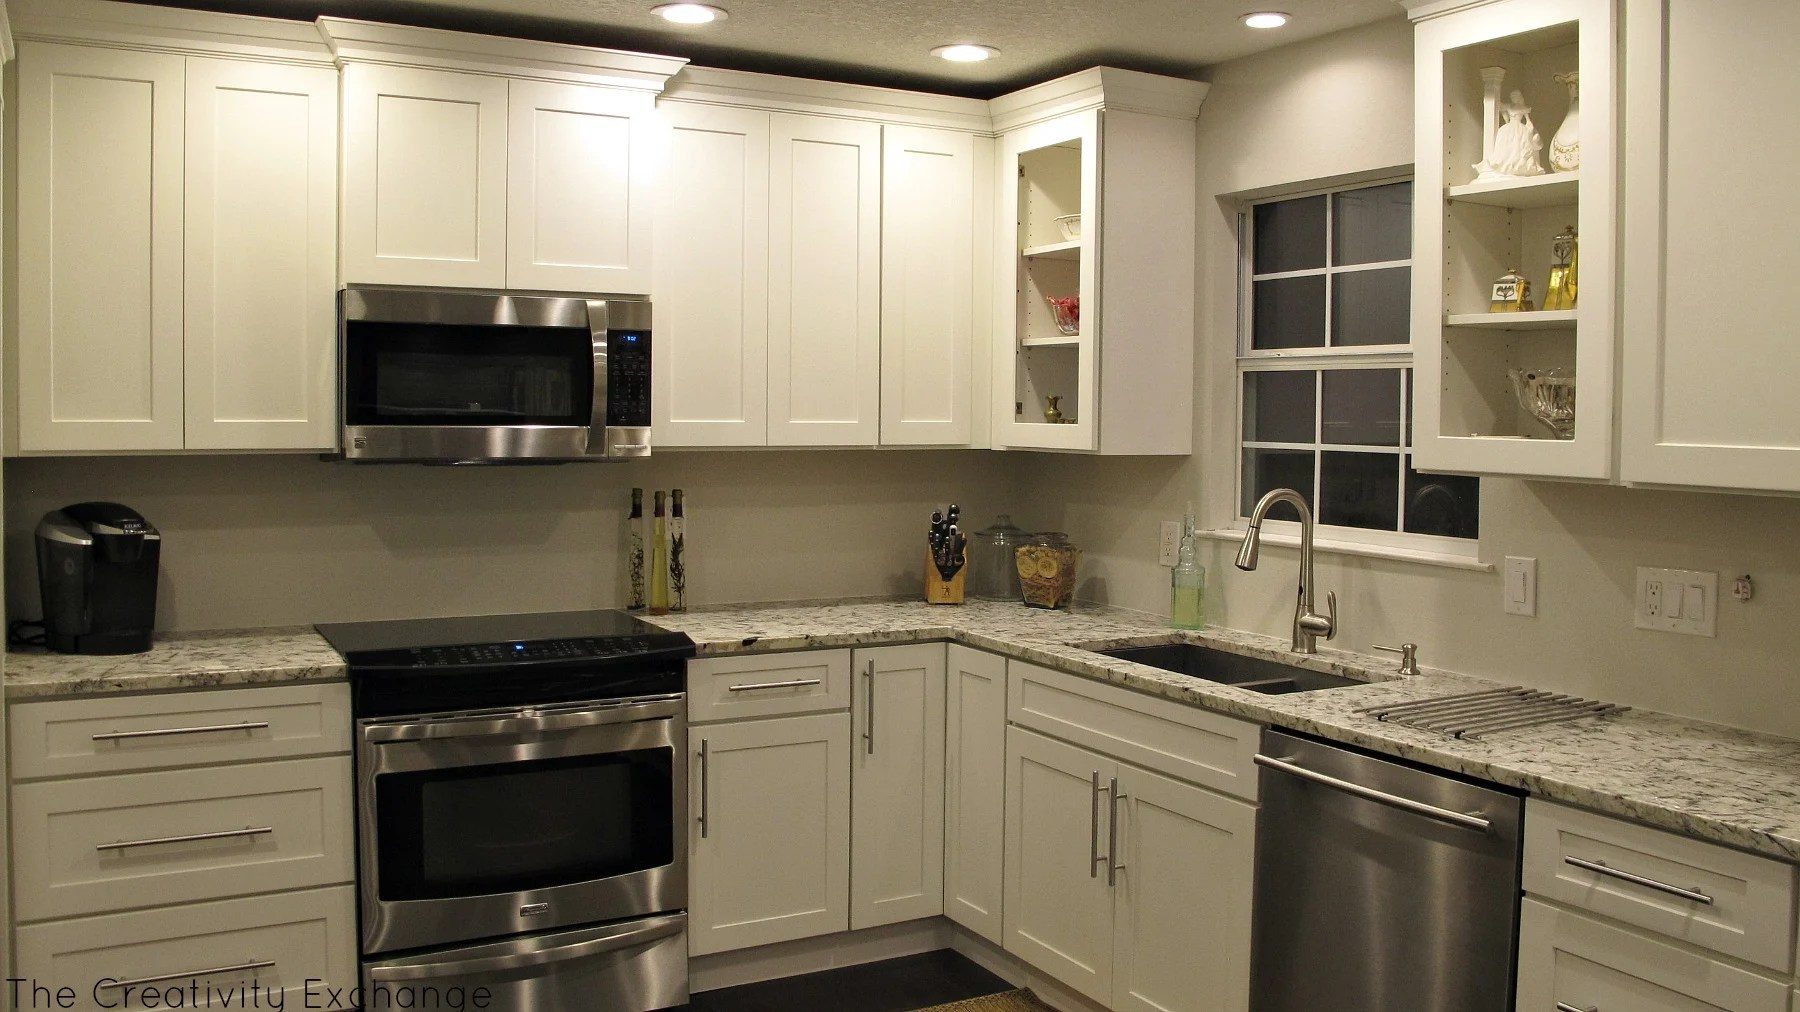 Cousin Franks Amazing Kitchen Remodel Before  After